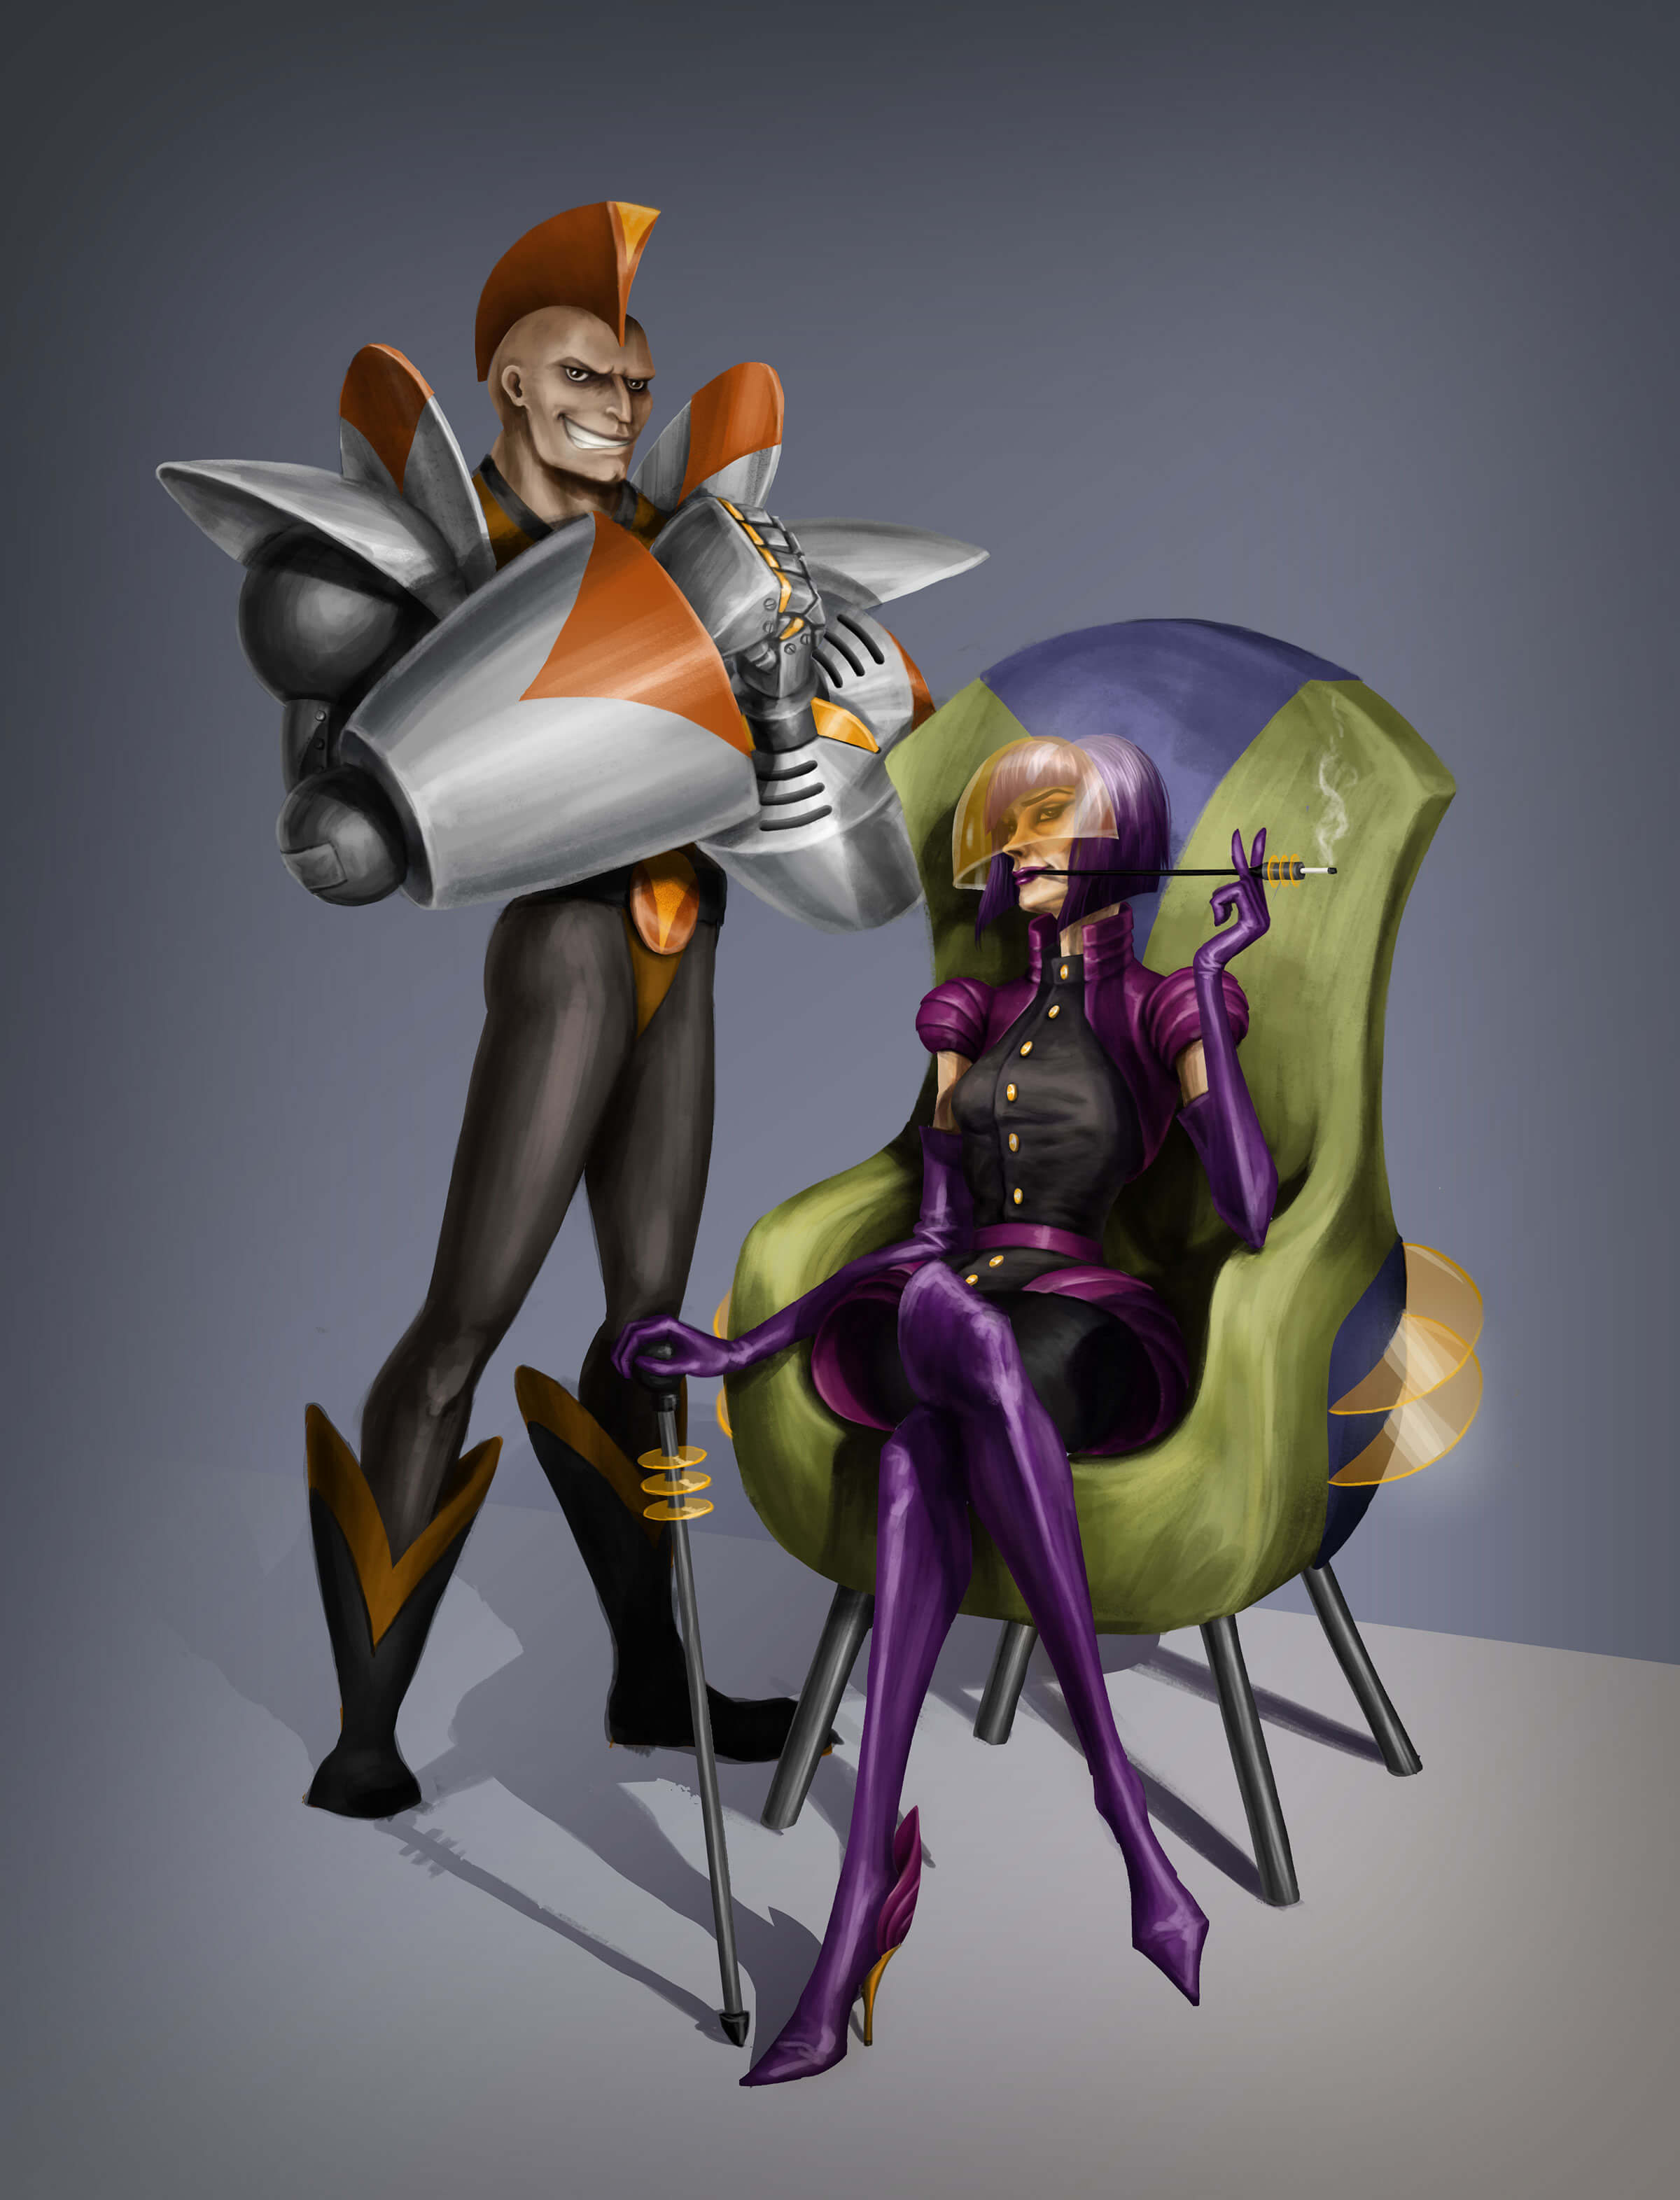 A woman with a futuristic cane and cigarette holder sits in a chair next to a mohawked man in metallic upper-body armor.